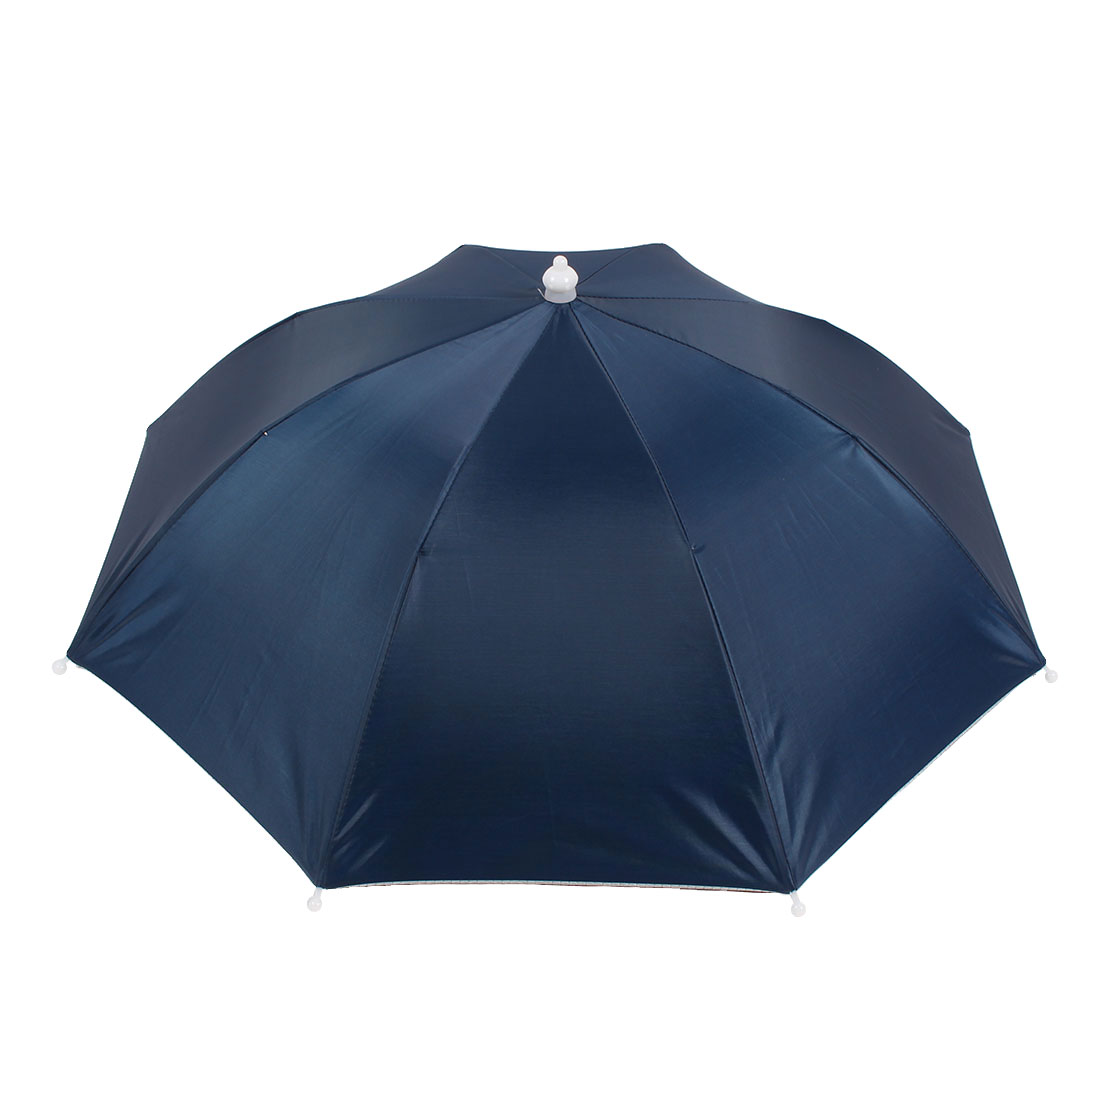 Portable Fishing Sun Protective Navy Blue Umbrella Hat for Fishing